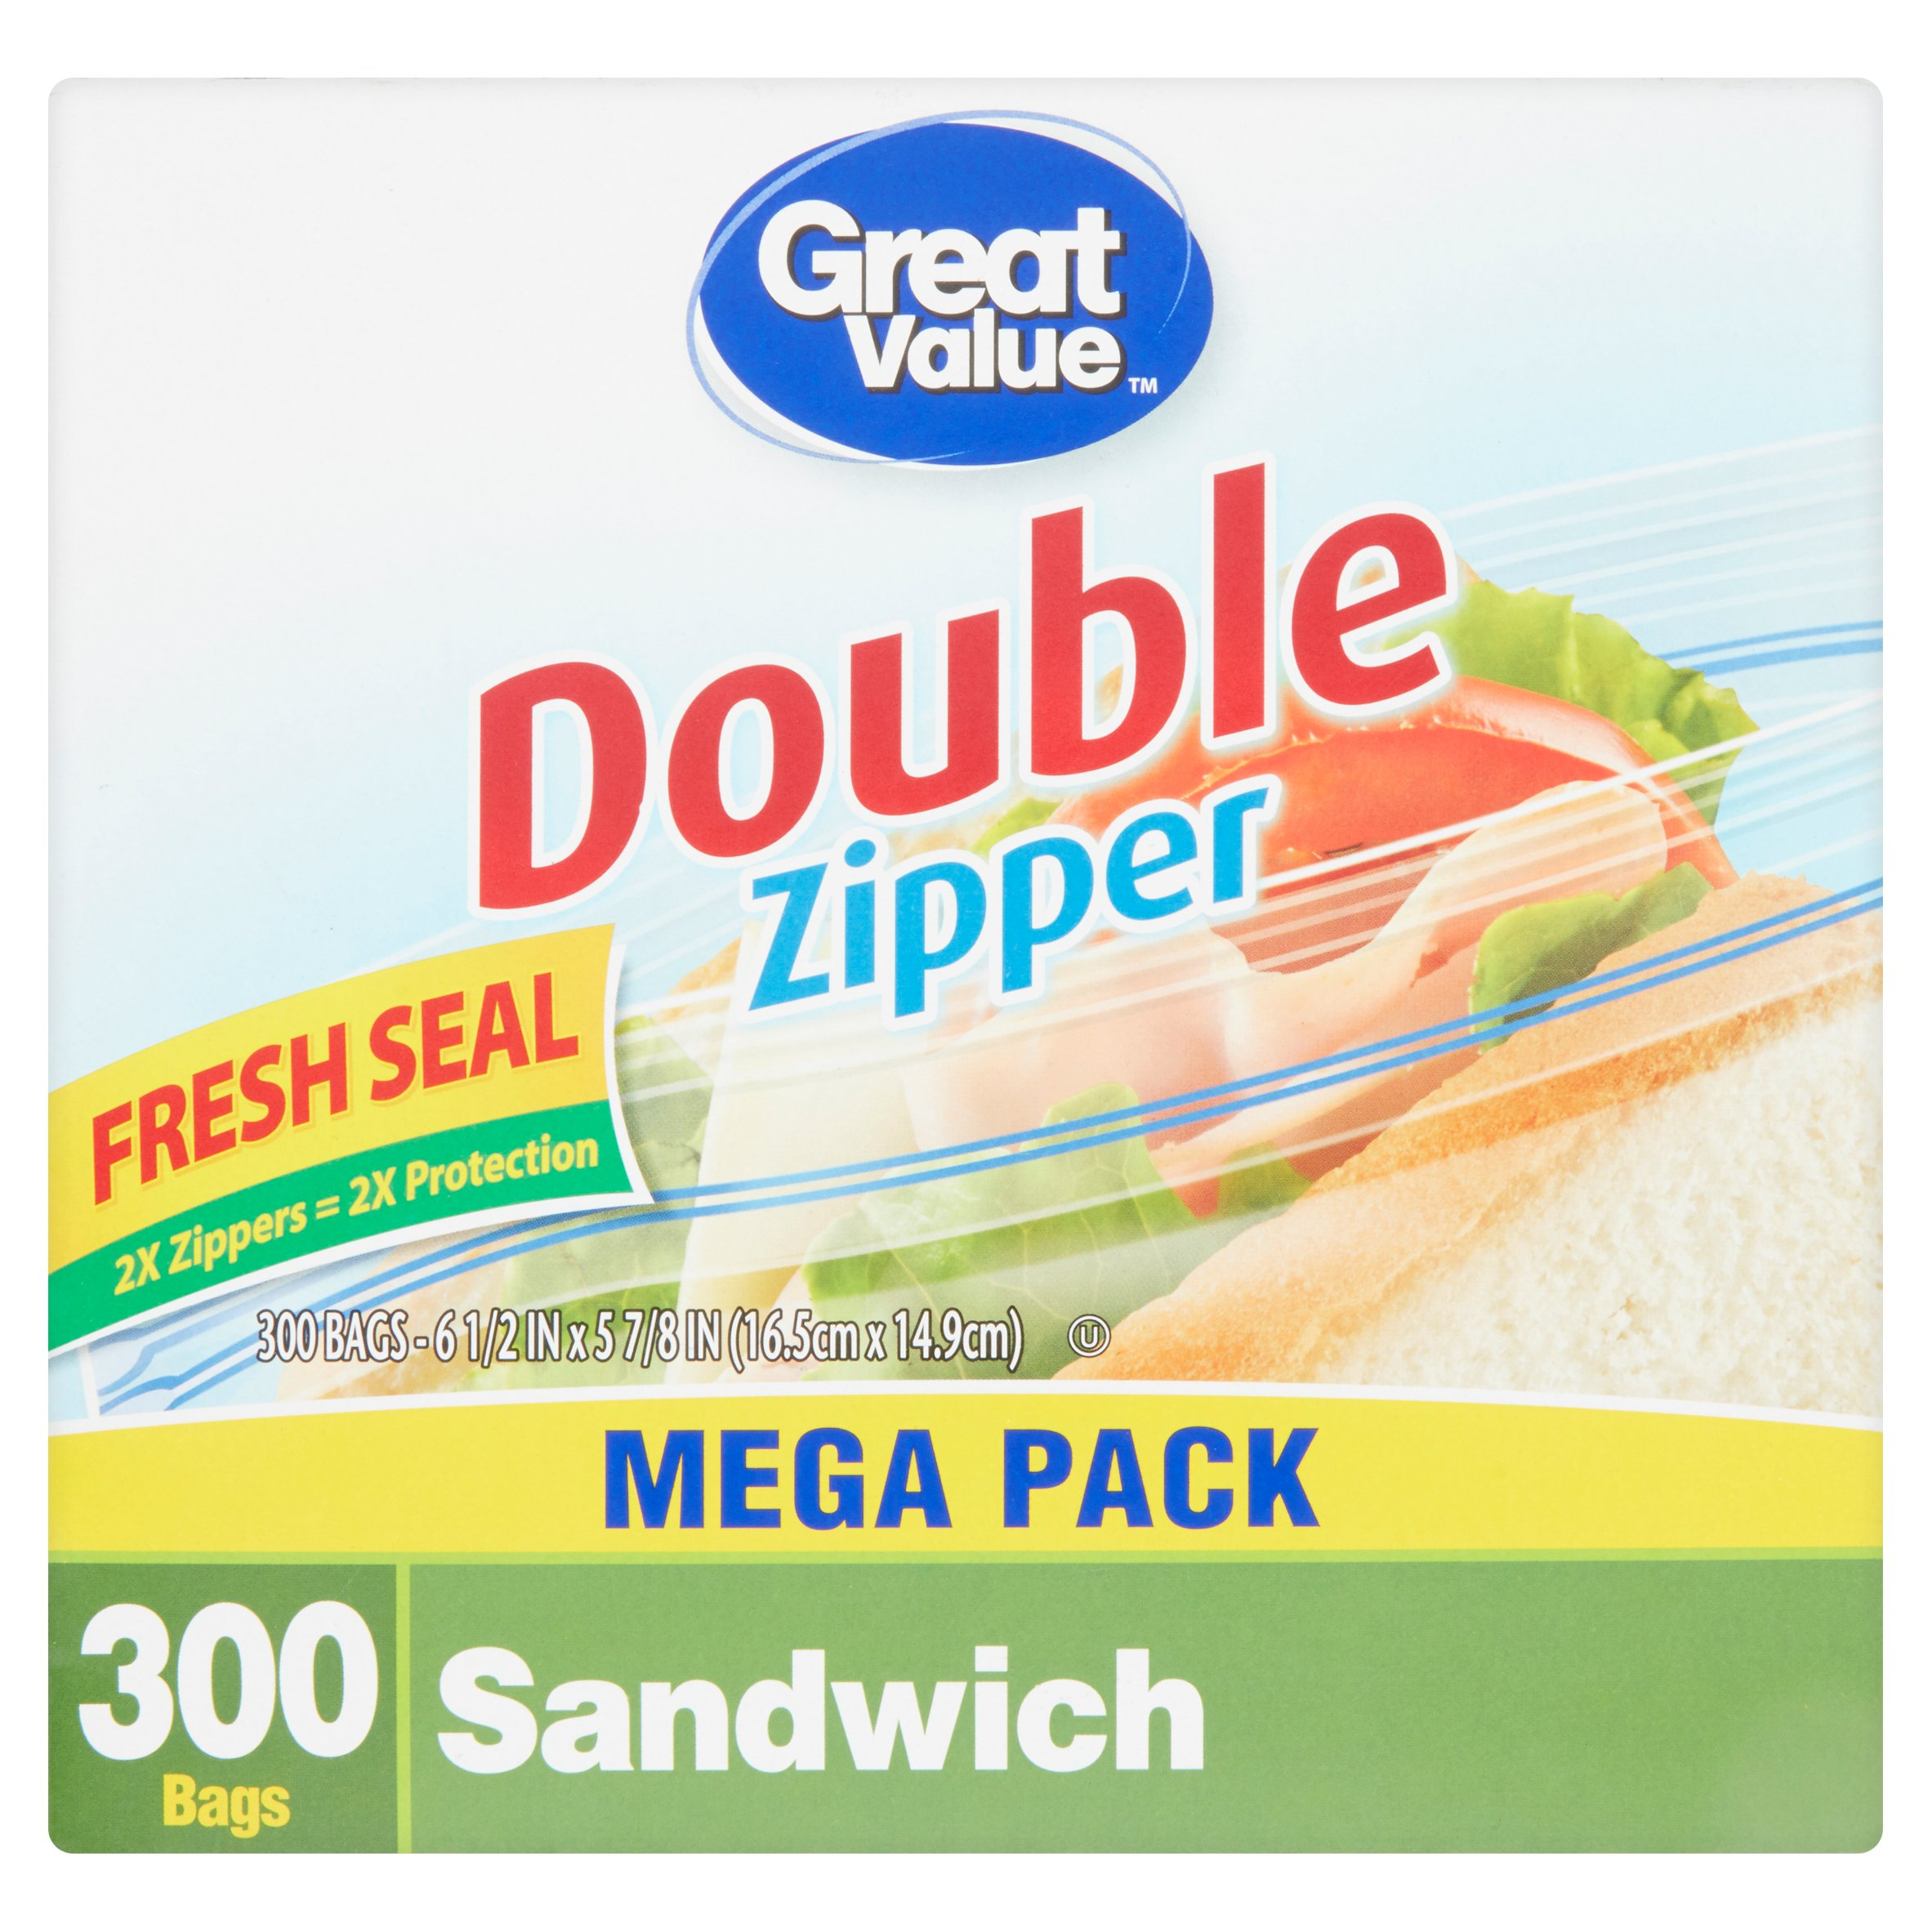 Great Value Double Zipper Sandwich Bags Mega Pack, 300 count